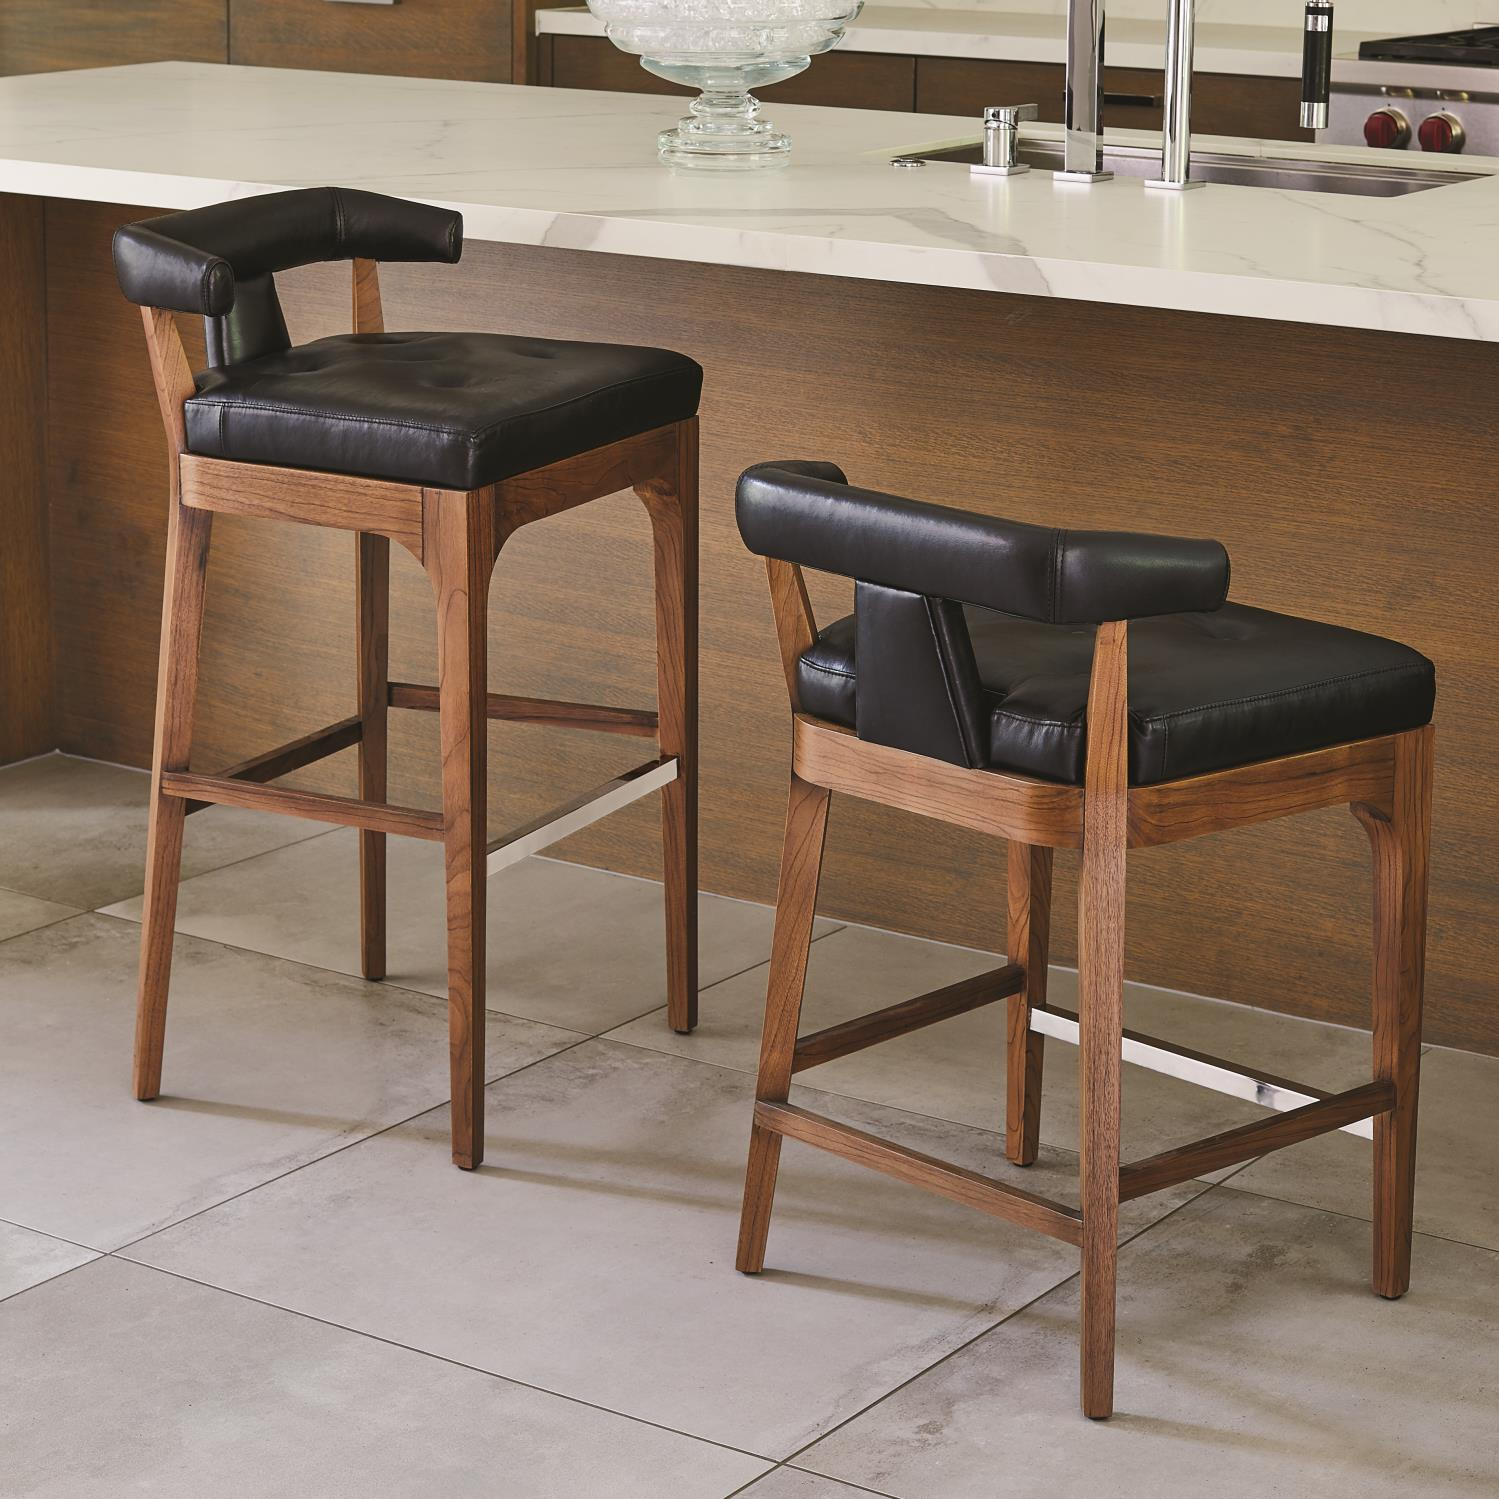 Outstanding Moderno Counter Stool Black Marble Leather Evergreenethics Interior Chair Design Evergreenethicsorg